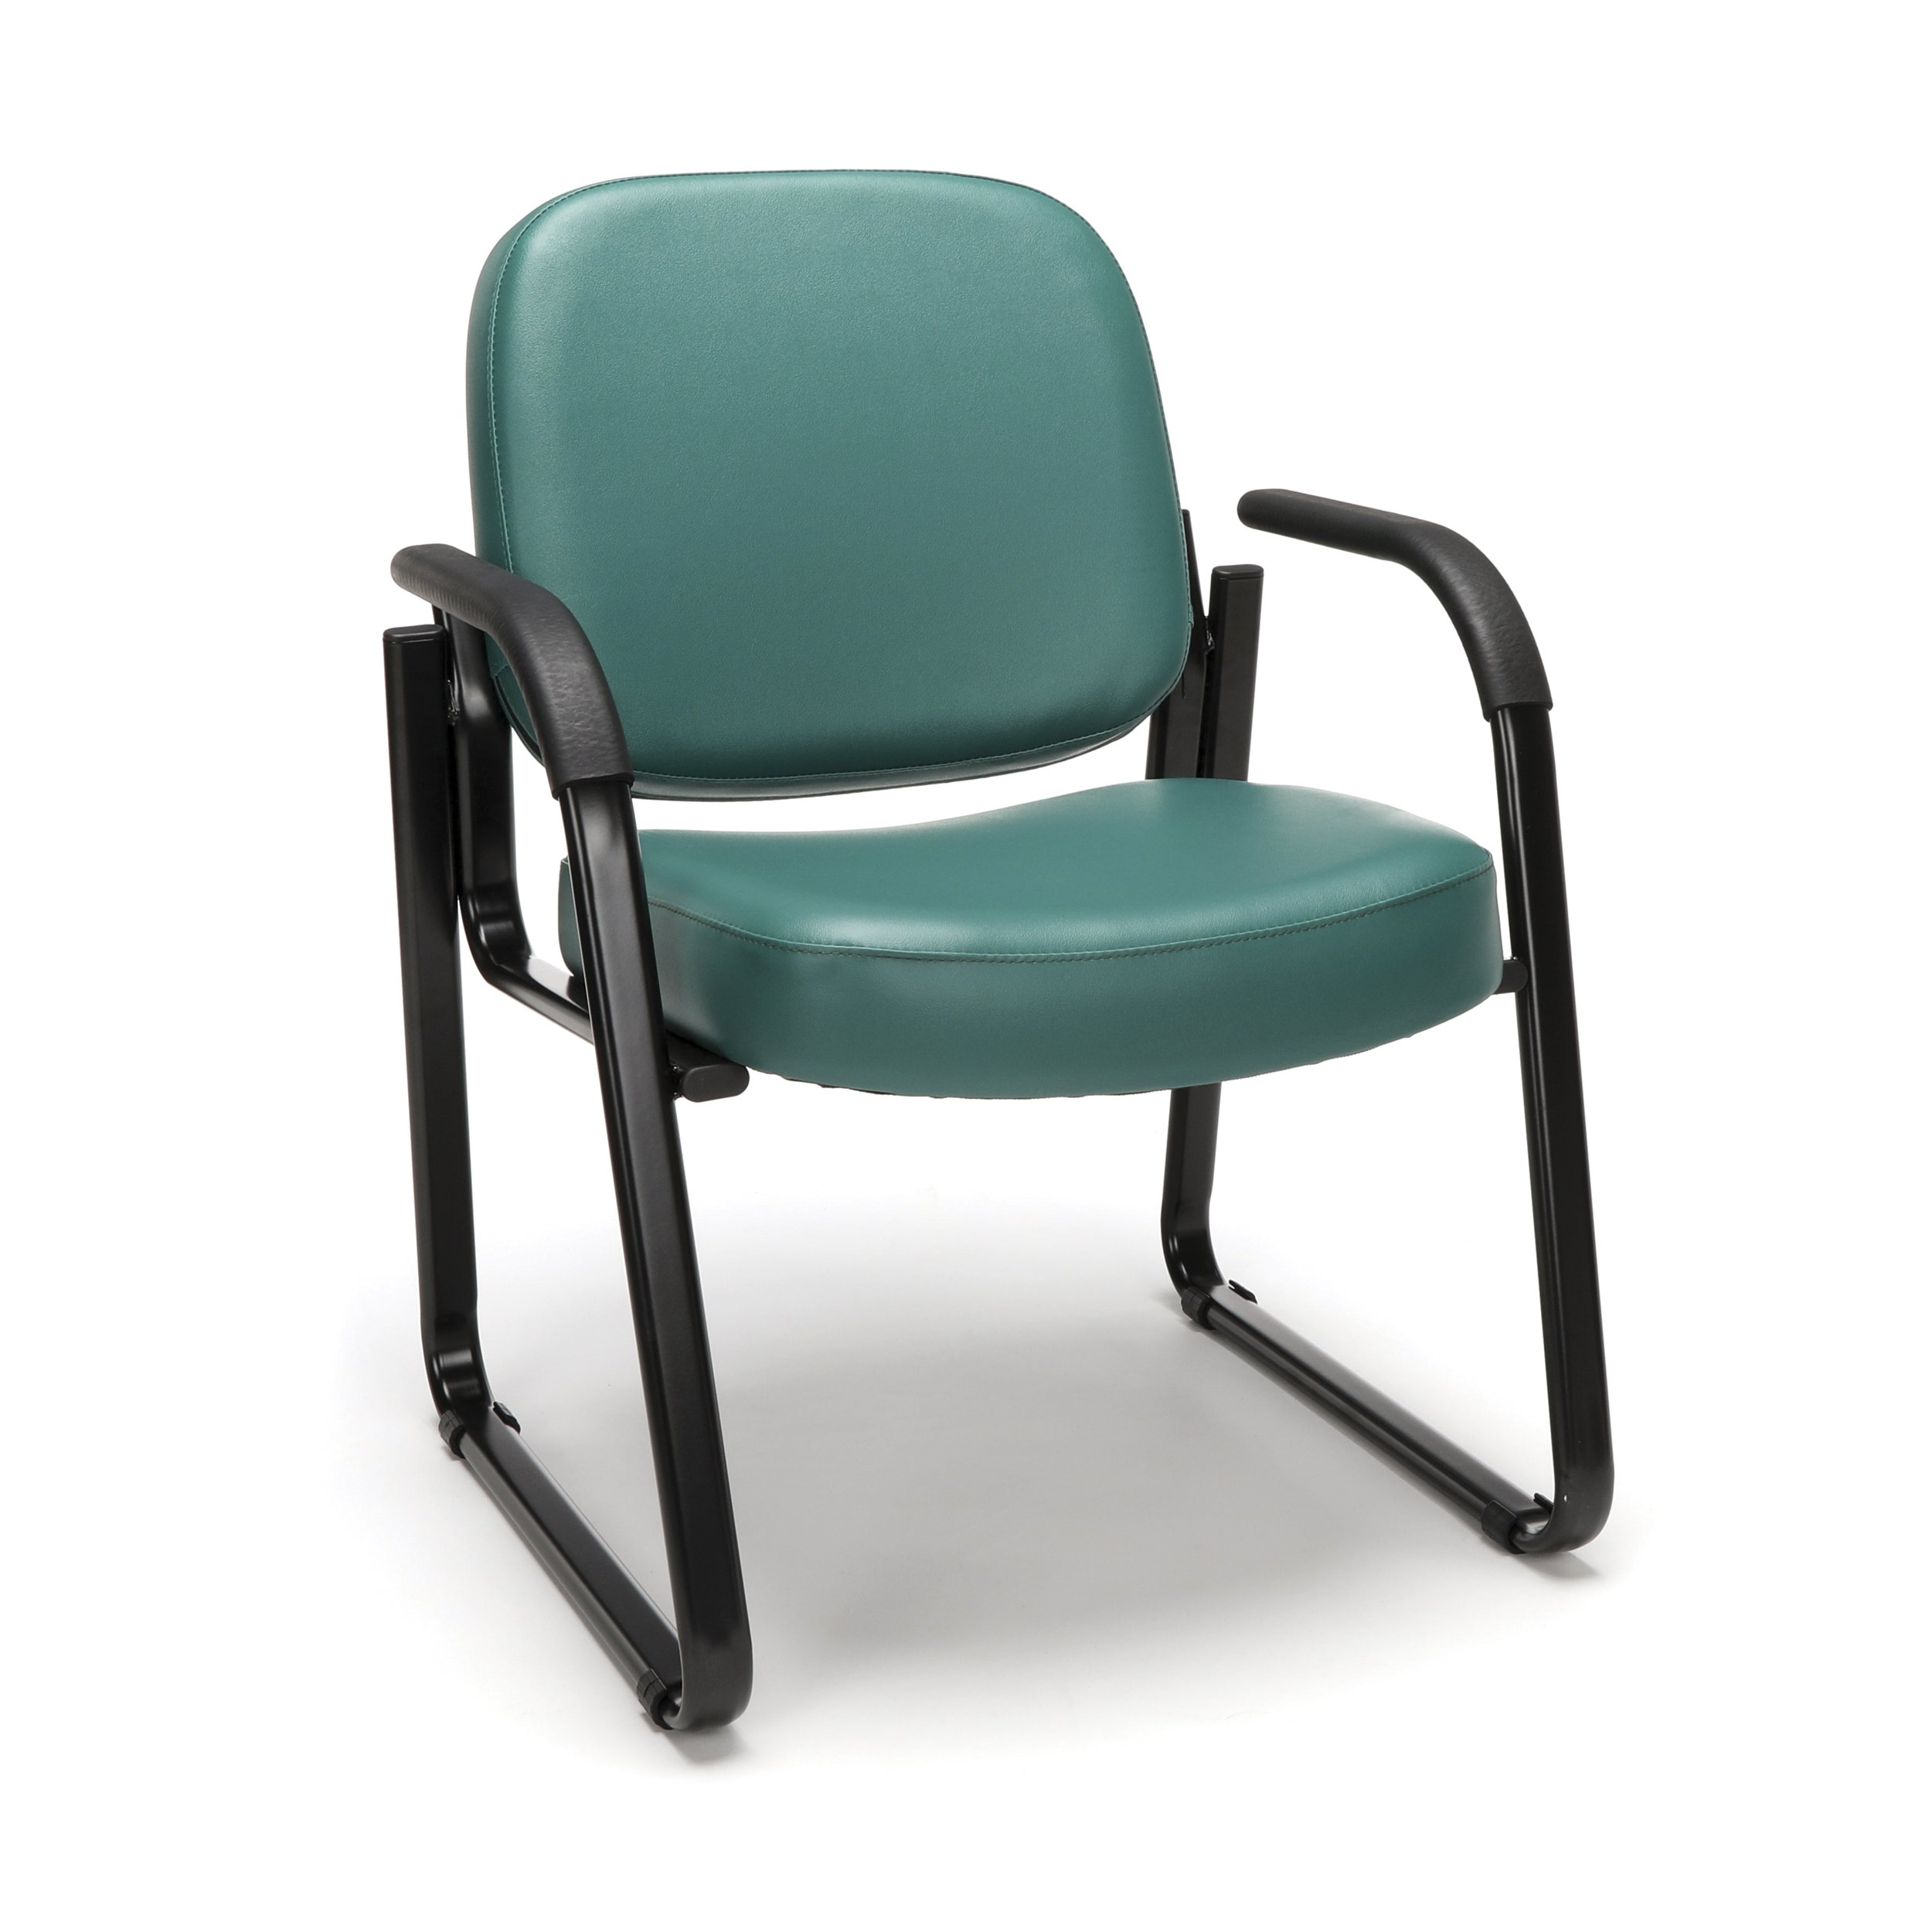 OFM Reception Chair with Arms - Anti-Microbial/Anti-Bacterial Vinyl Guest Chair, Teal (403-VAM)